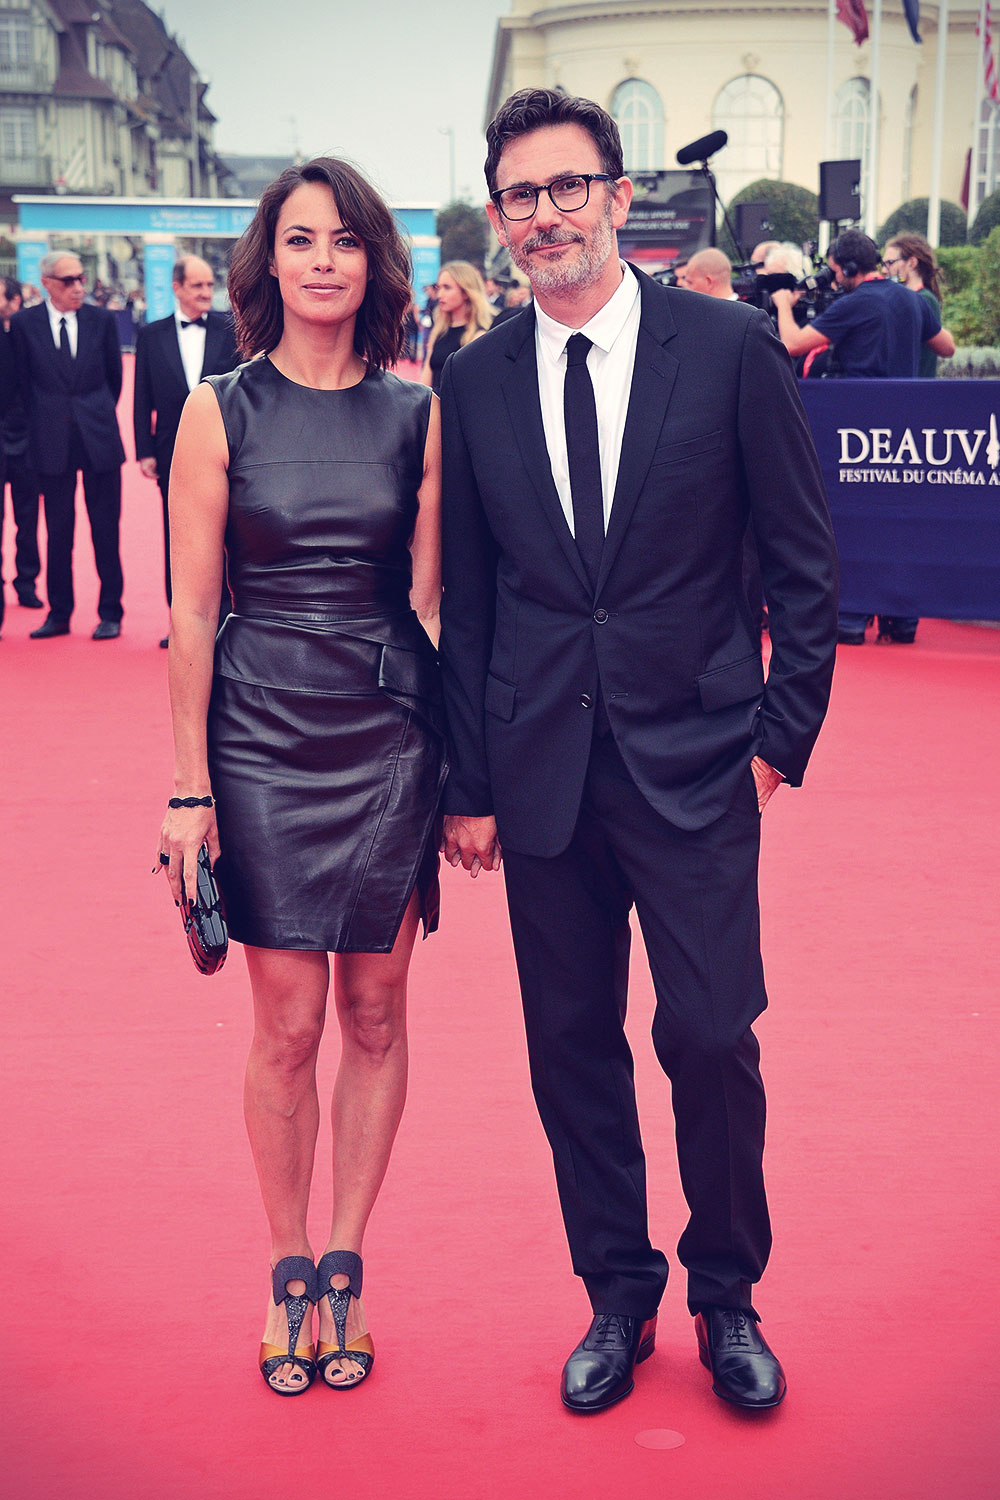 Berenice Bejo attends opening ceremony of the 40th American Film Festival